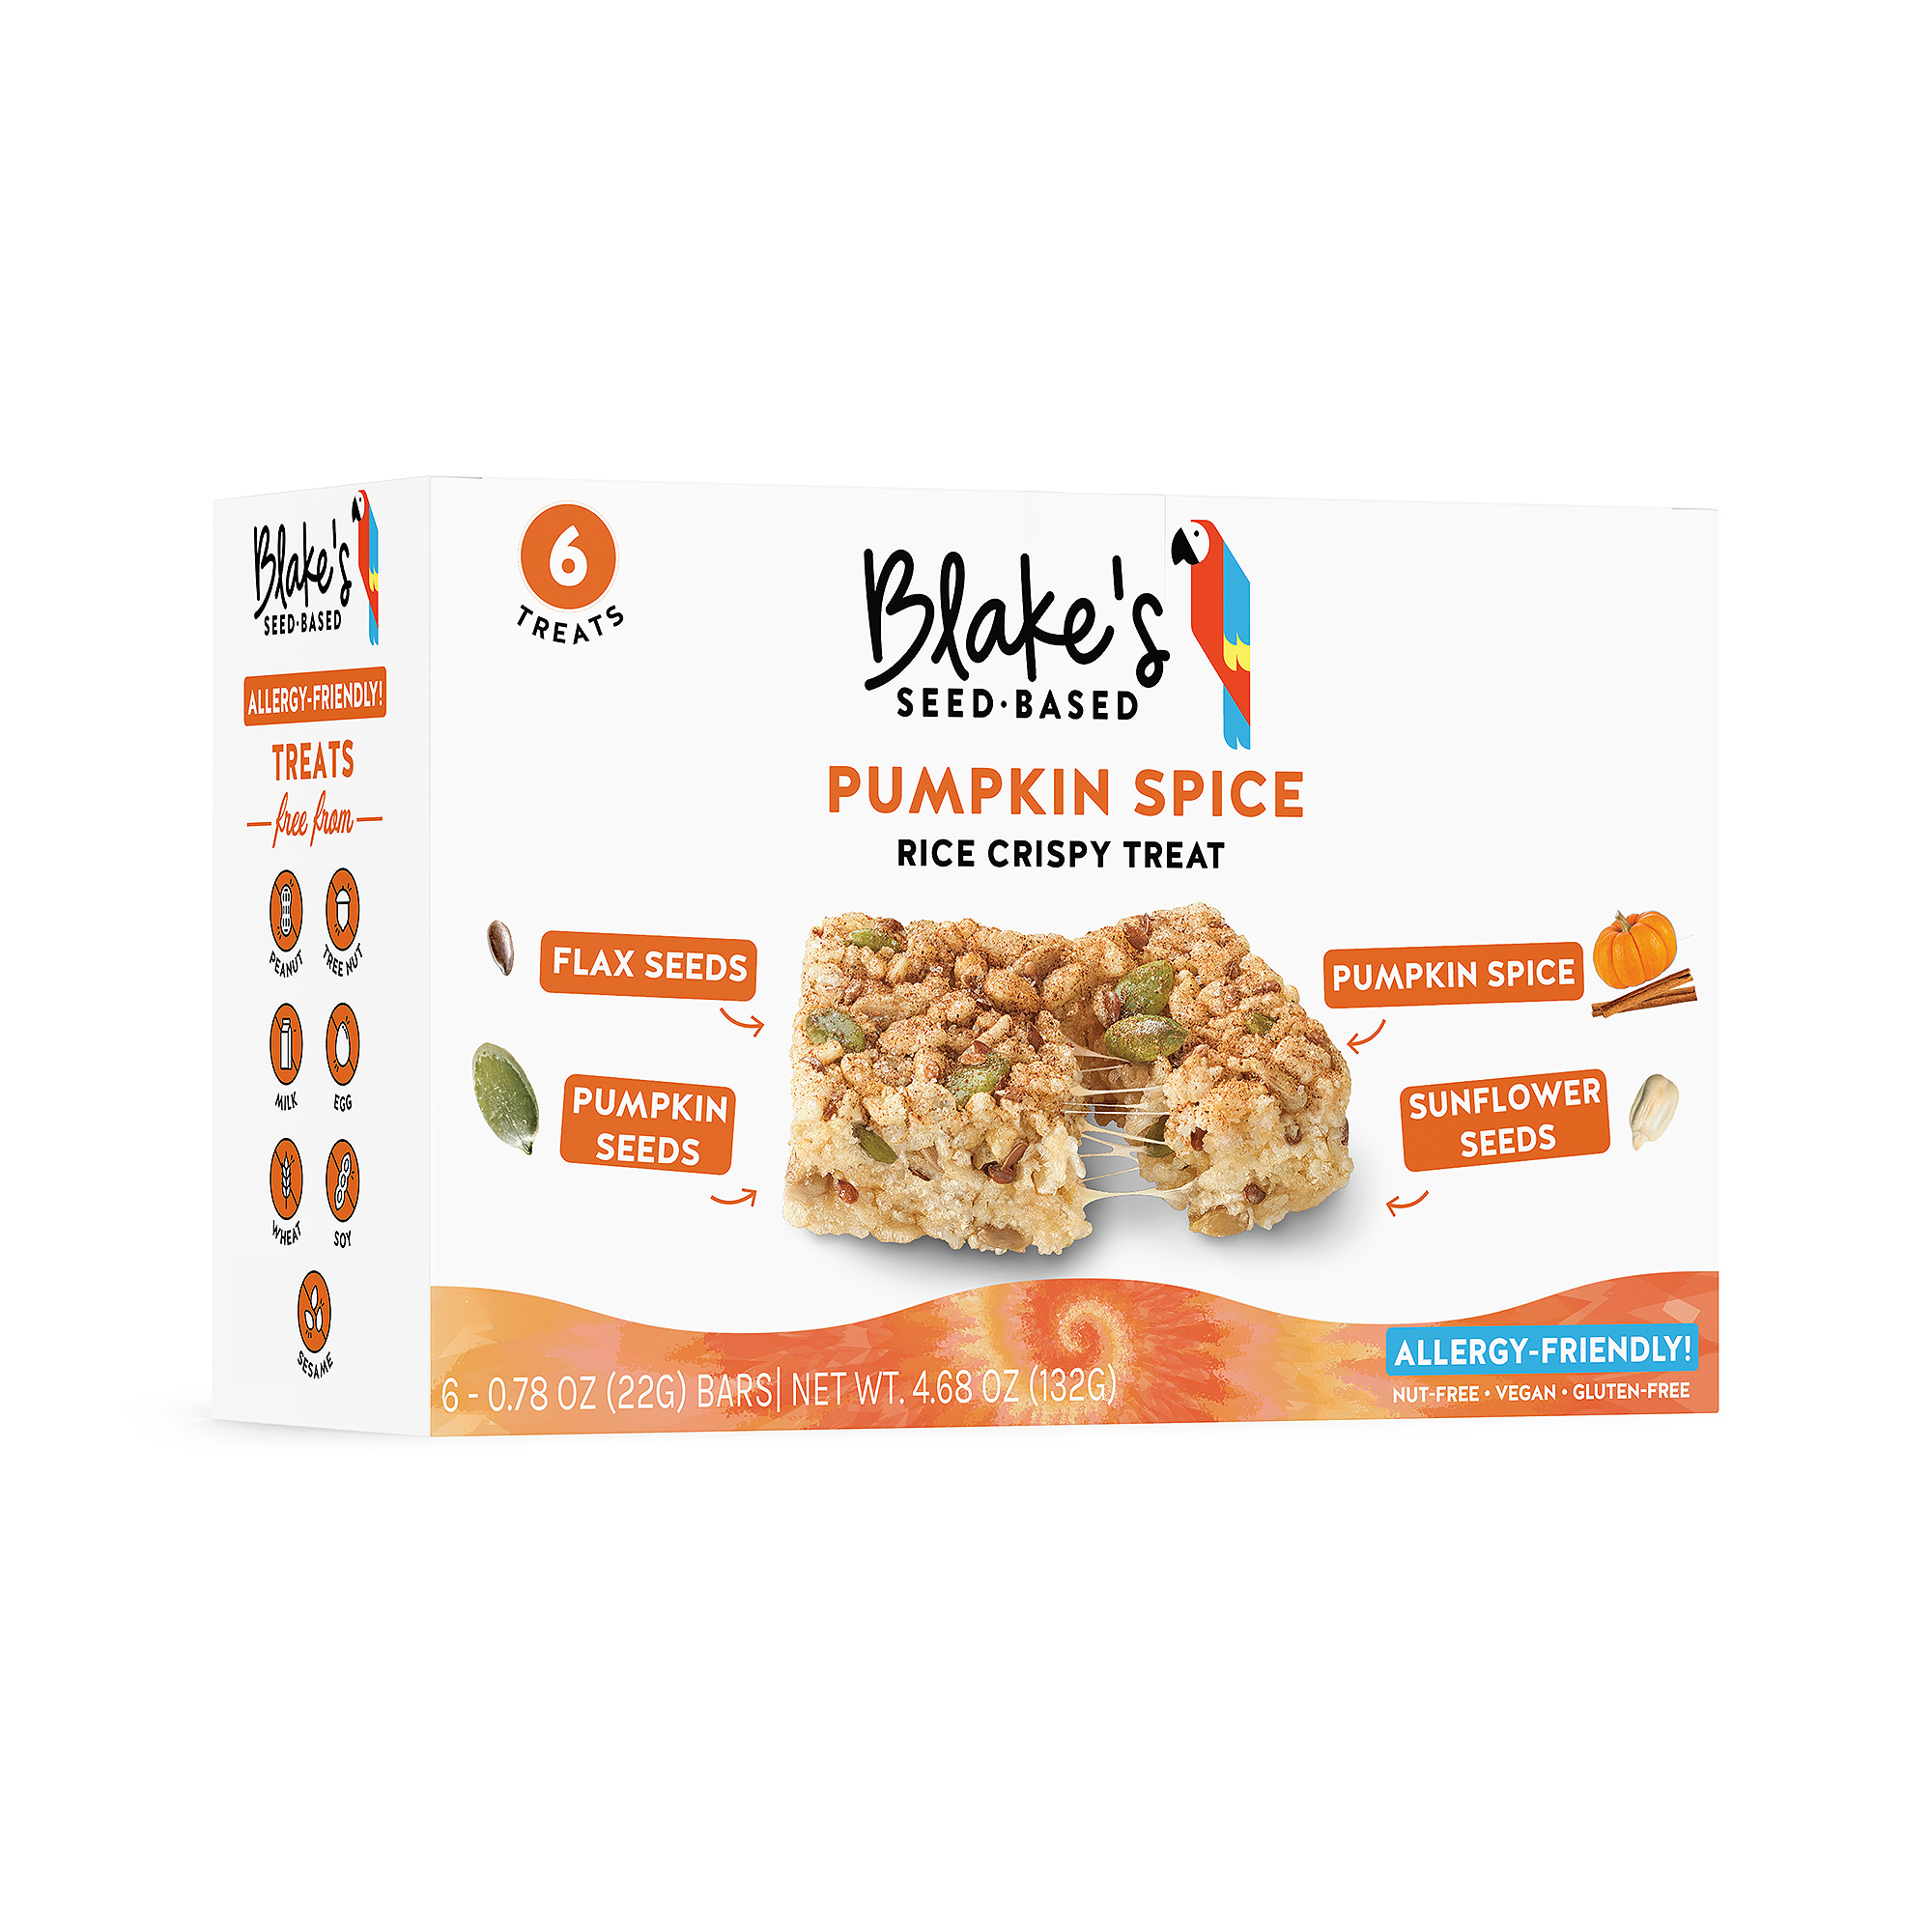 Blake's seed-based rice crispy treats are already heart-healthy indulgences and the addition of pumpkin spice makes them all-the-more drool-worthy.